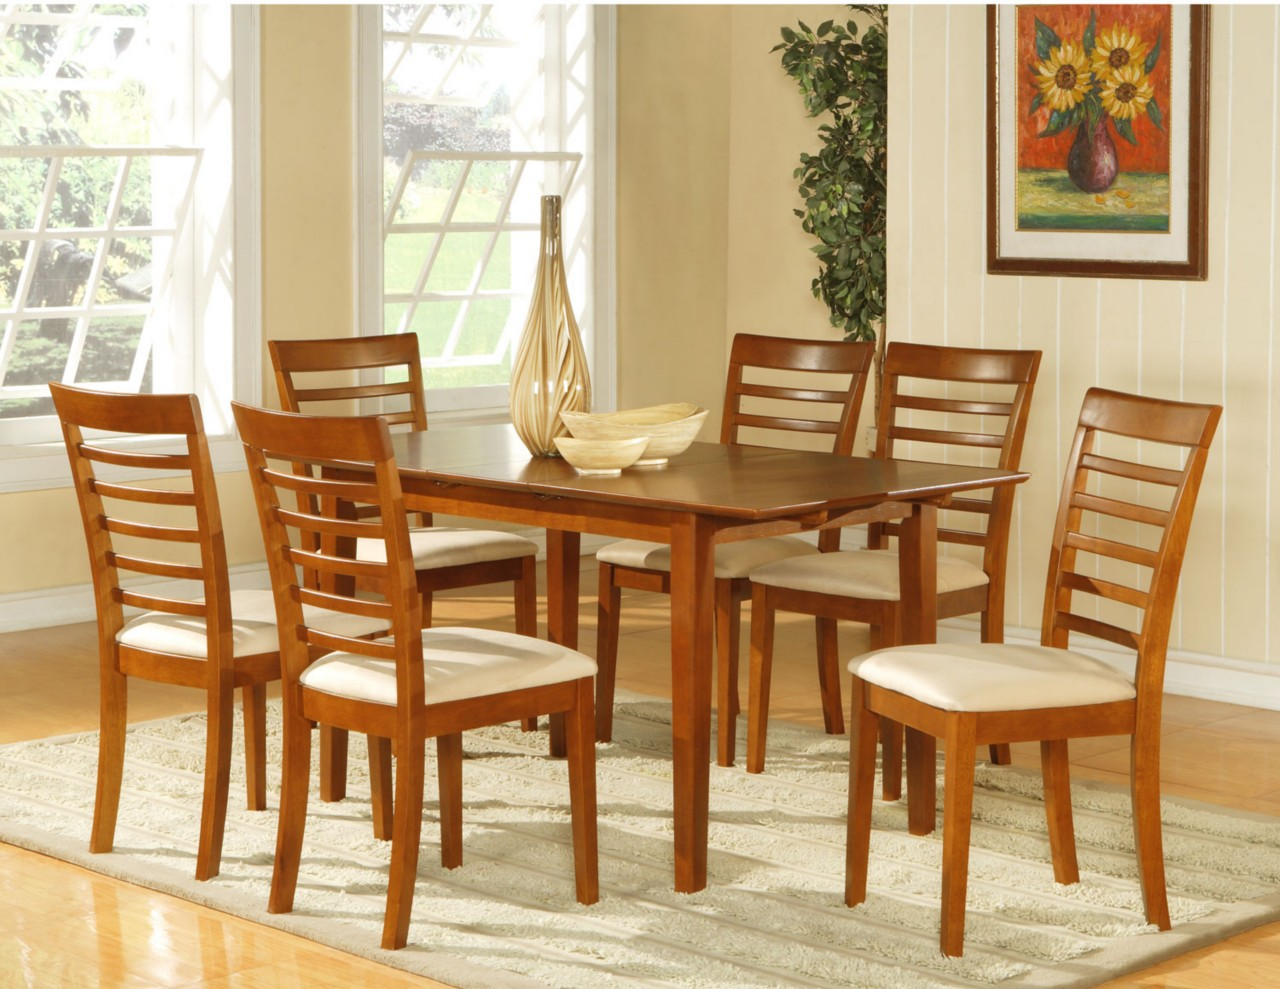 7pc Dining Room Dinette Set Table And 6 Chairs Brown Ebay